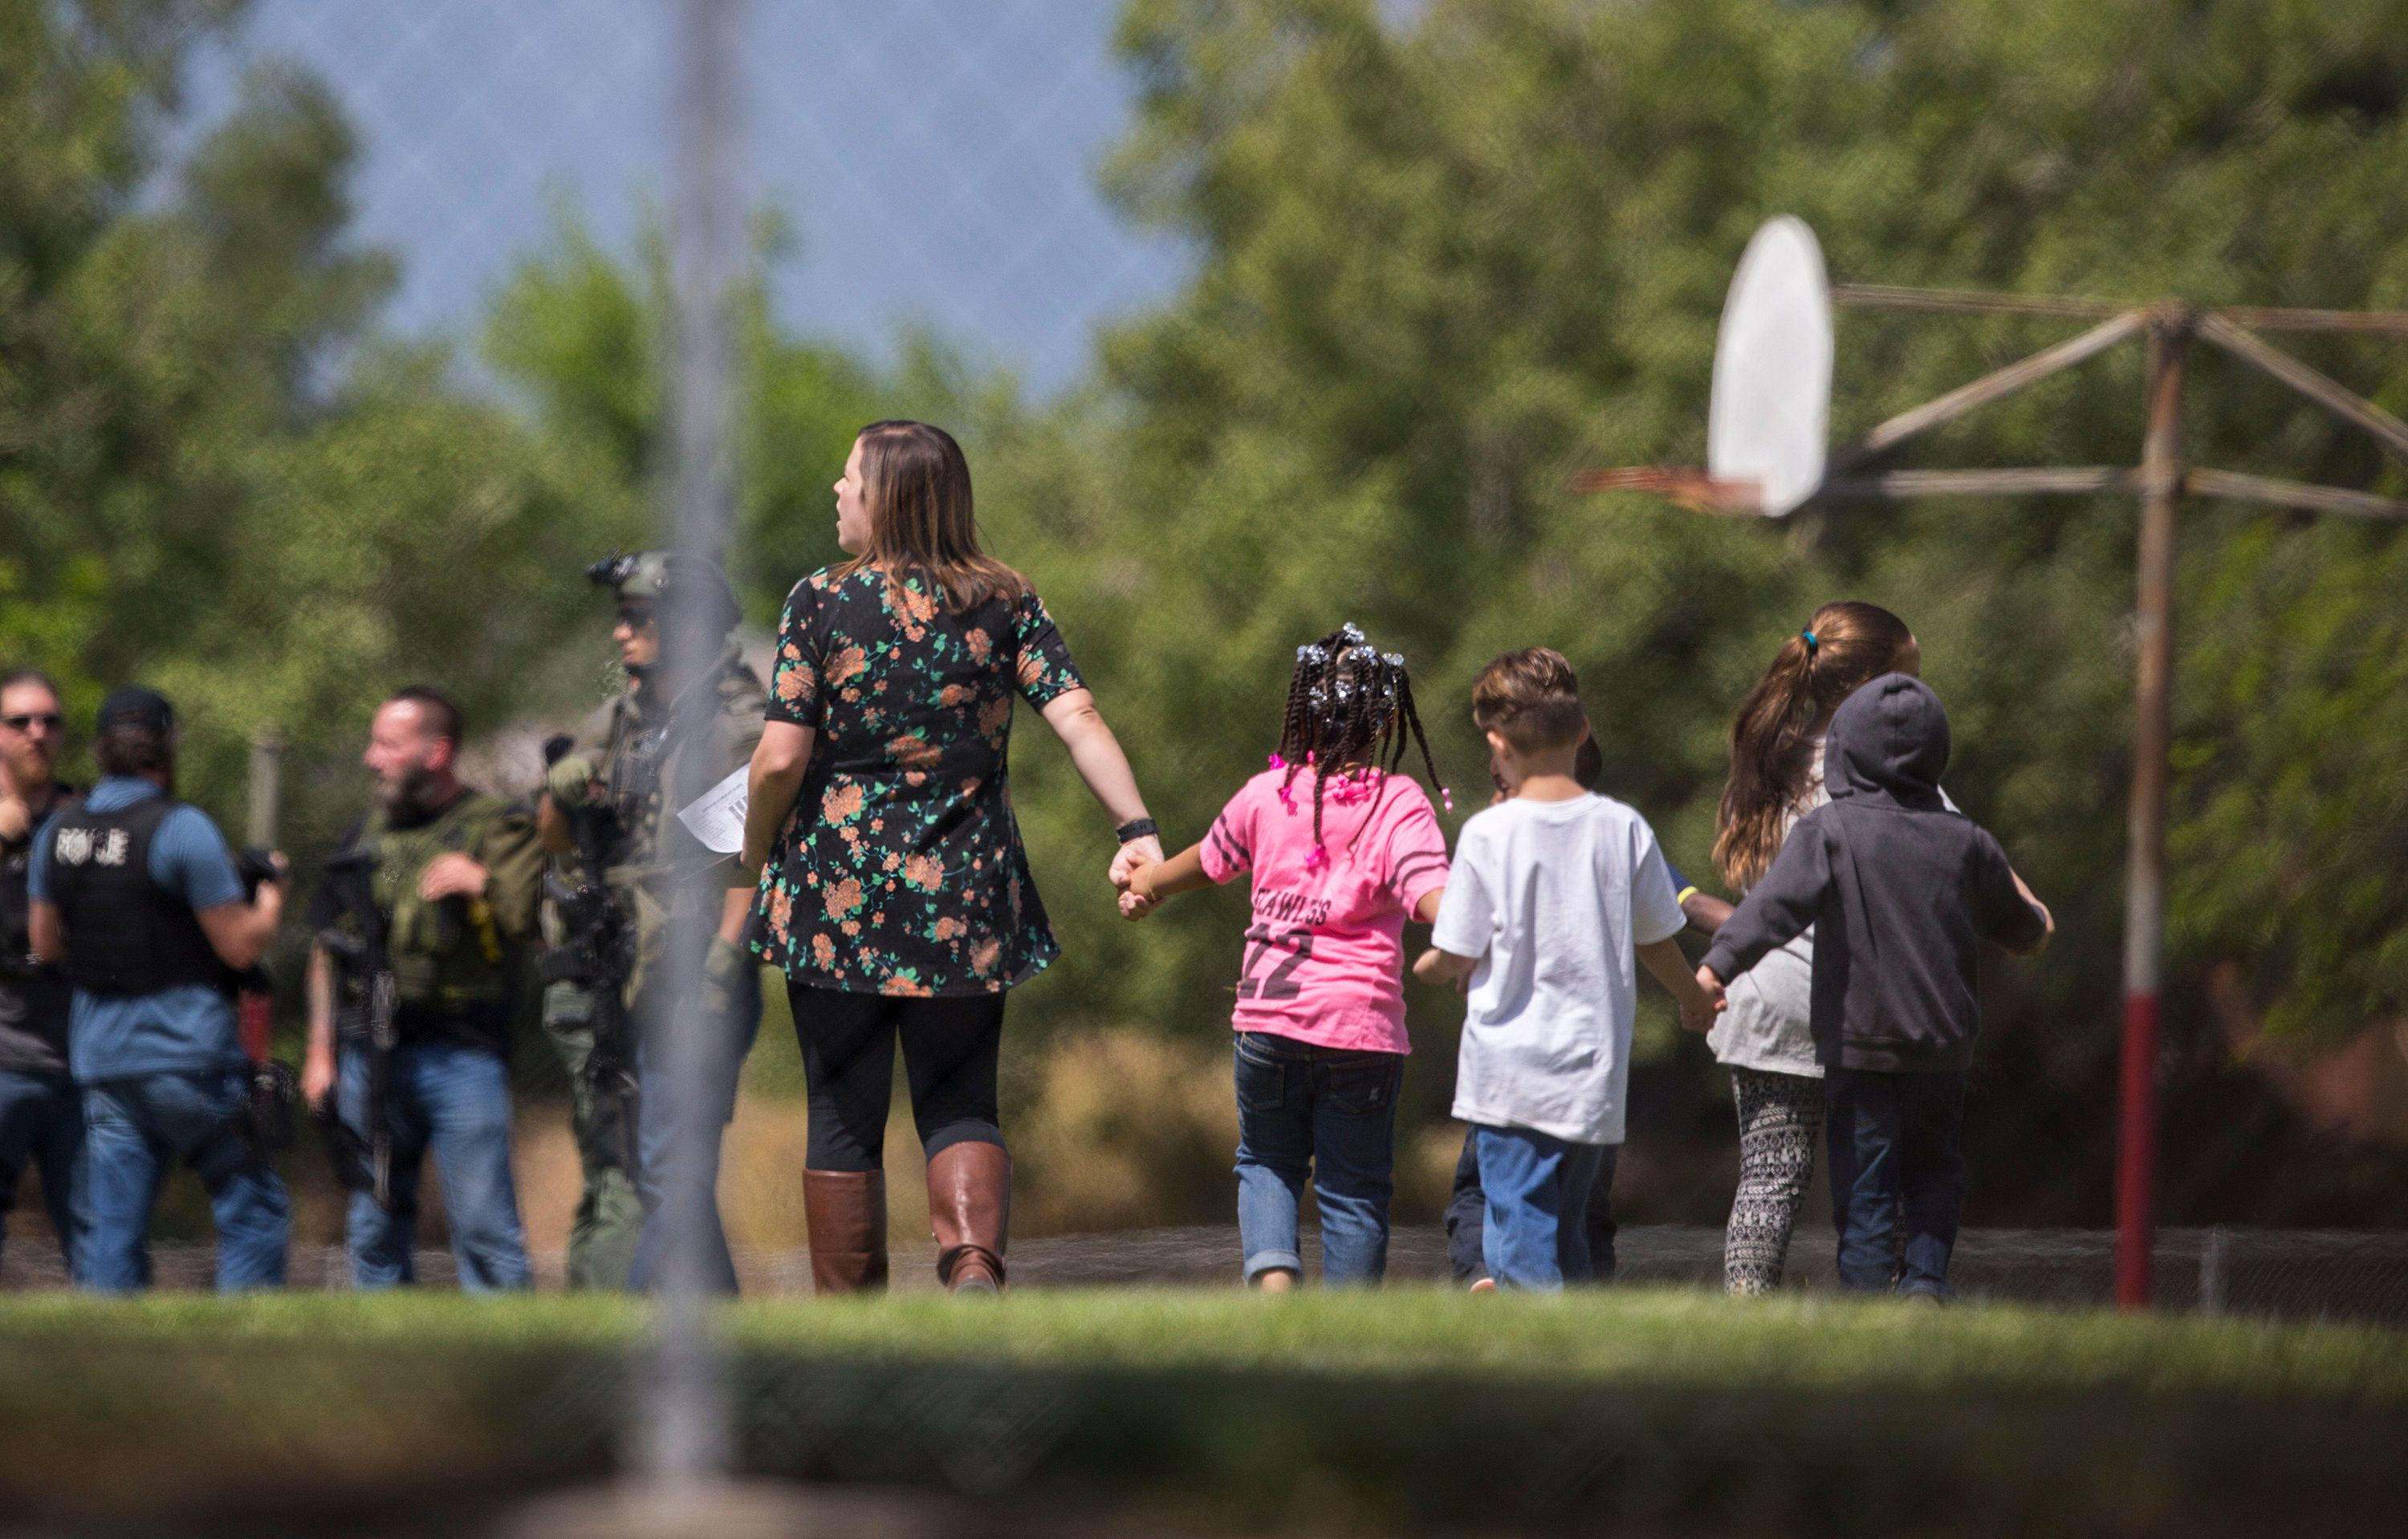 SAN BERNARDINO, CA - APRIL 10: Evacuated children hold hands on the playground after a shooting inside North Park Elementary School on April 10, 2017 in San Bernardino, California. (Photo by Gina Ferazzi/Los Angeles Times via Getty Images)